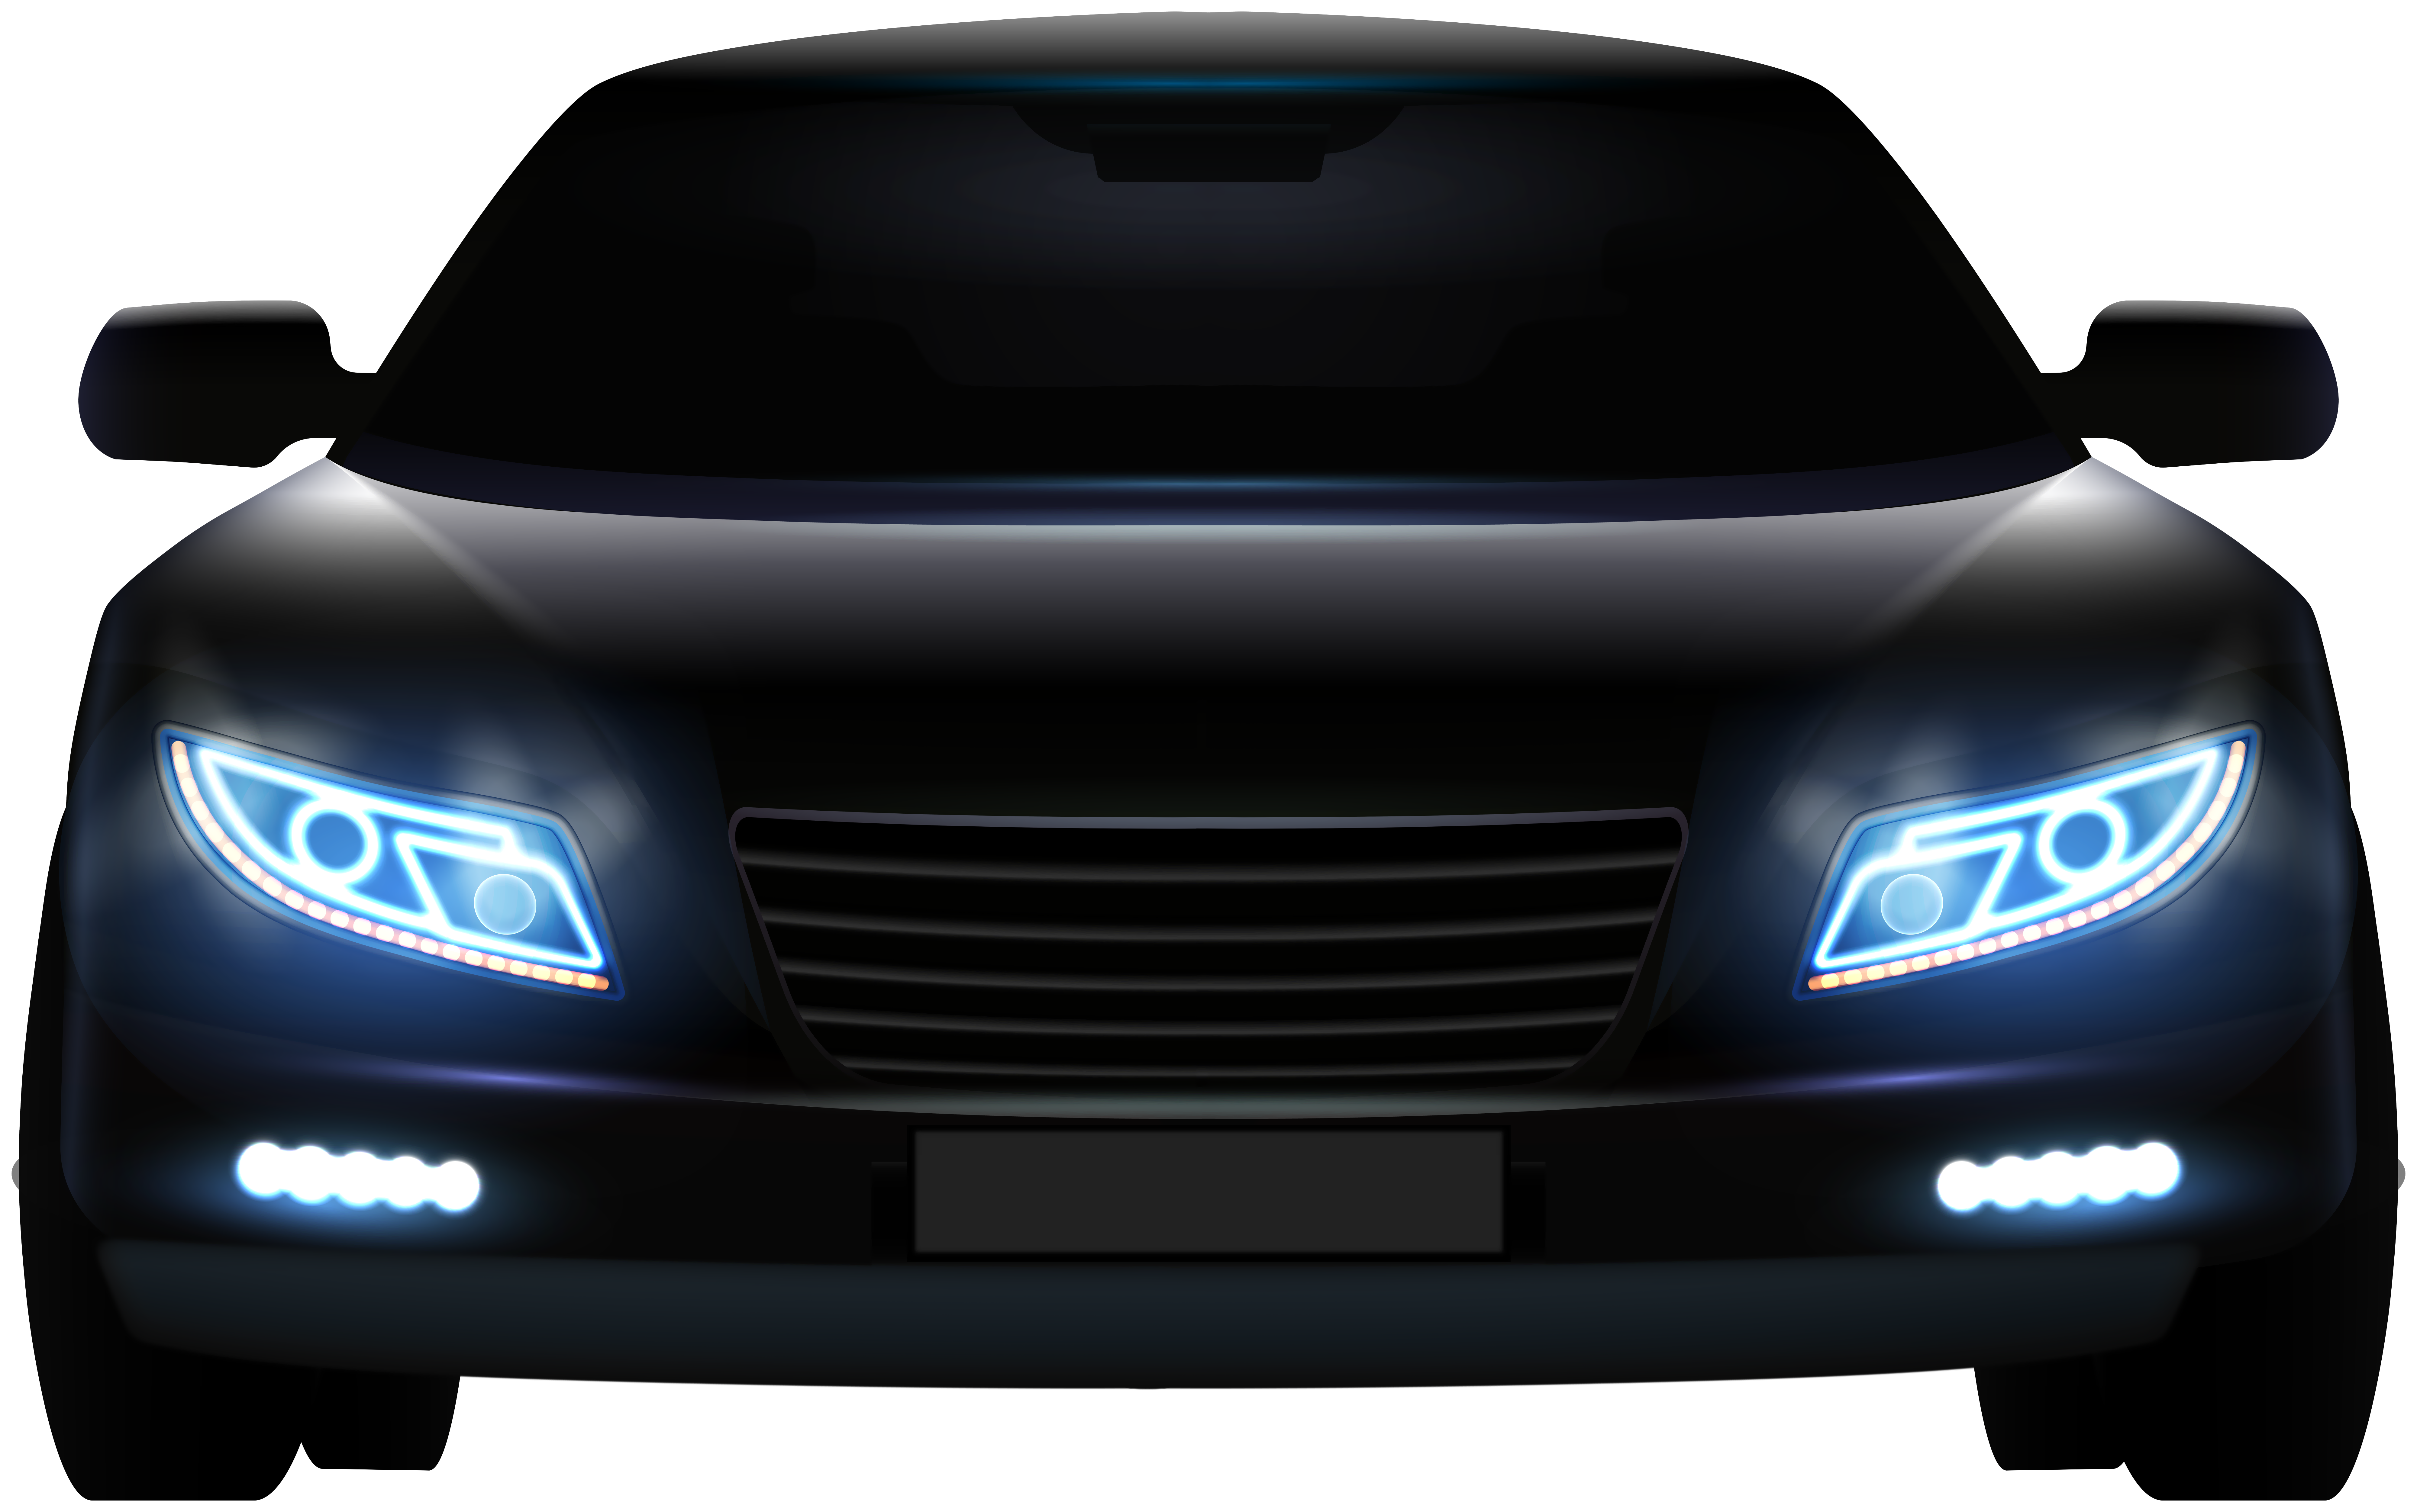 Transparent car front view clipart picture black and white library Black Front Car PNG Clip Art - Best WEB Clipart picture black and white library